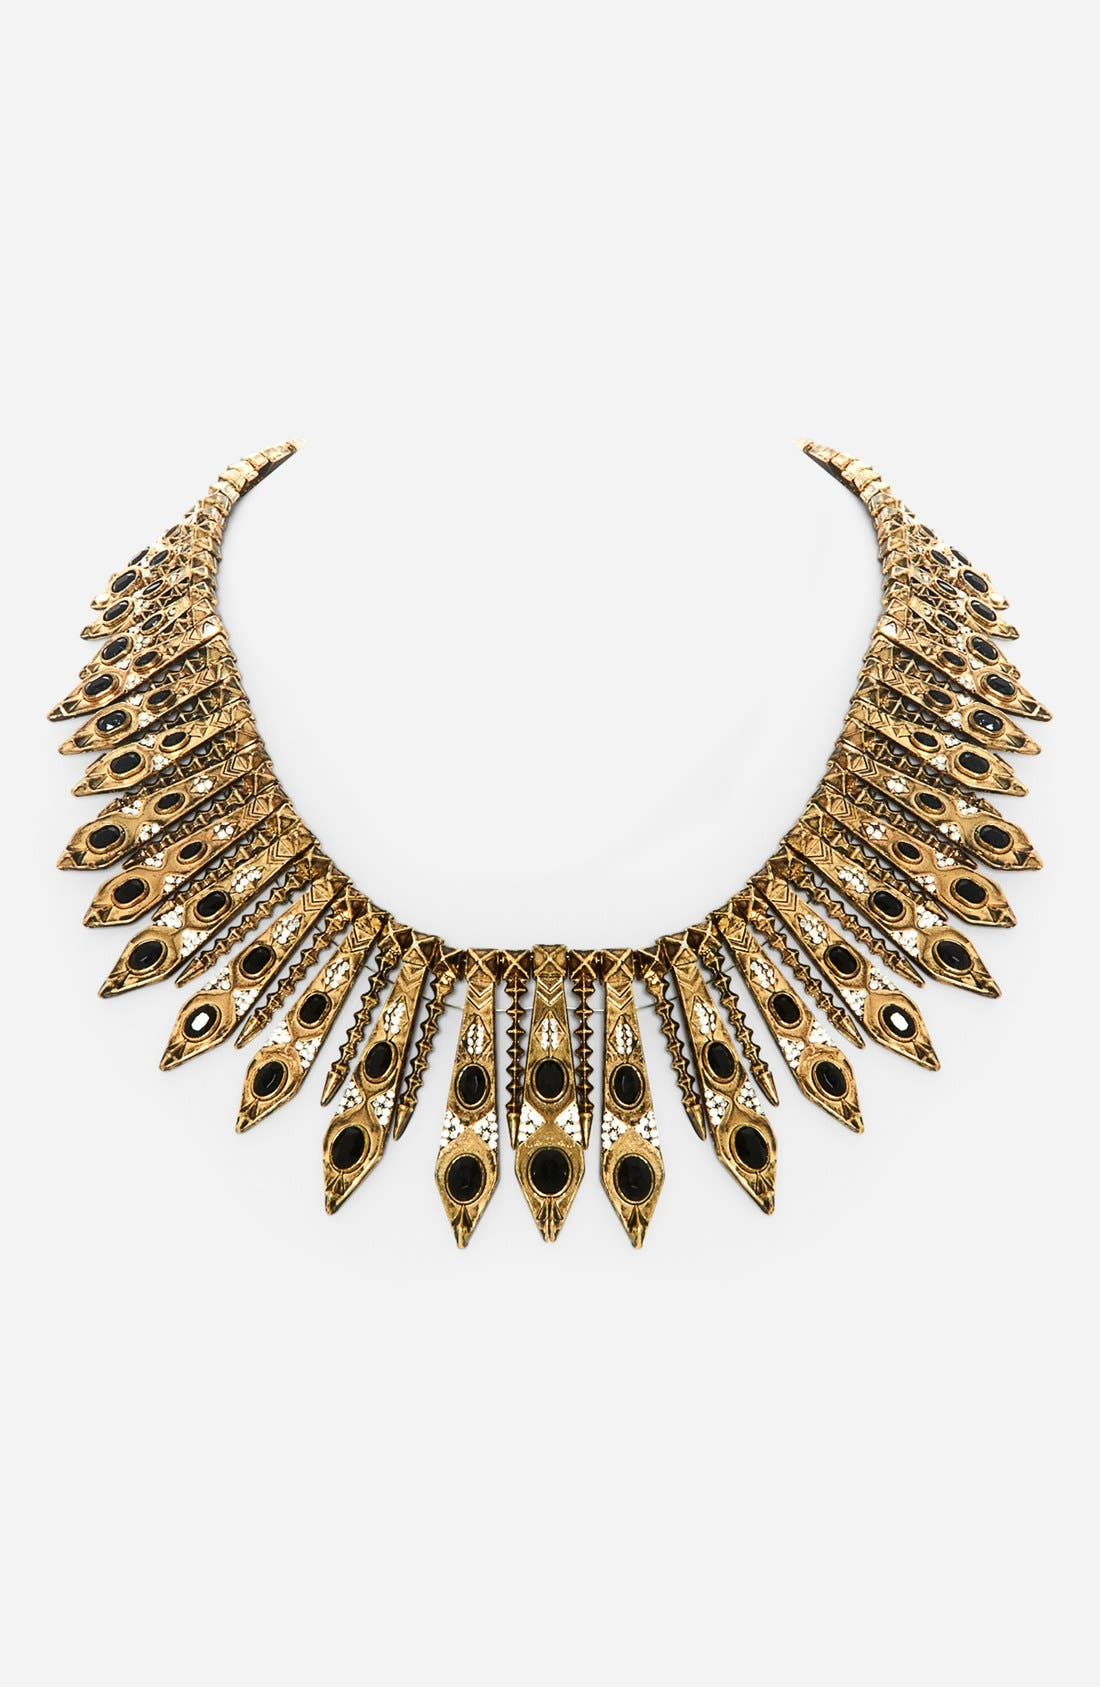 Alternate Image 1 Selected - House of Harlow 1960 'Gypsy Feather' Collar Necklace